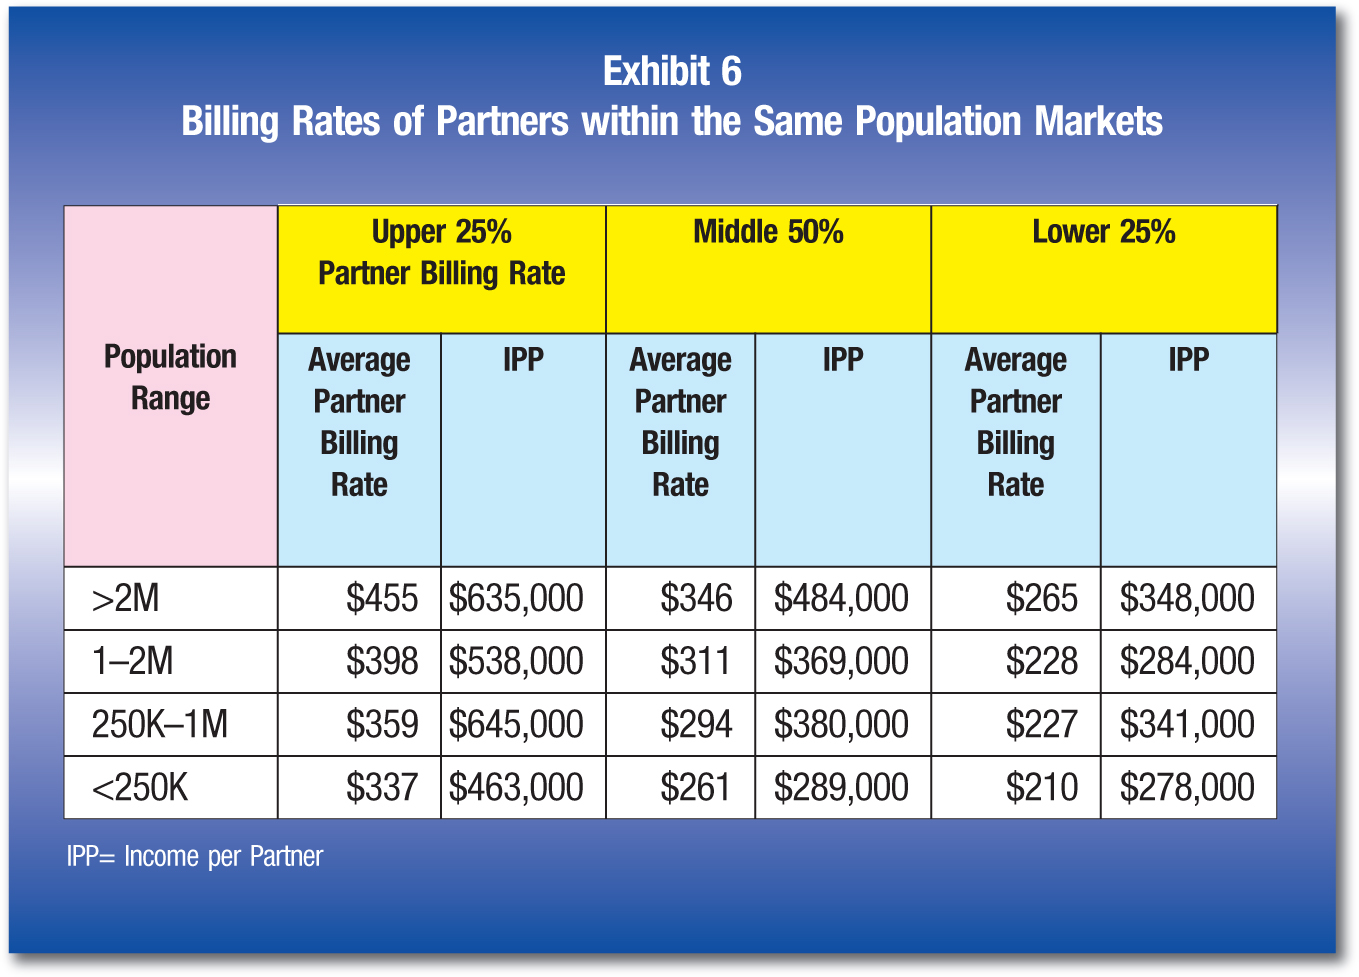 Population Range; Upper 25% Partner Billing Rate; Middle 50%; Lower 25% Average Partner Billing Rate; IPP; Average Partner Billing Rate; IPP; Average Partner Billing Rate; IPP >2M; $455; $635,000; $346; $484,000; $265; $348,000 1–2M; $398; $538,000; $311; $369,000; $228; $284,000 250K–1M; $359; $645,000; $294; $380,000; $227; $341,000 <250K; $337; $463,000; $261; $289,000; $210; $278,000 IPP= Income per Partner